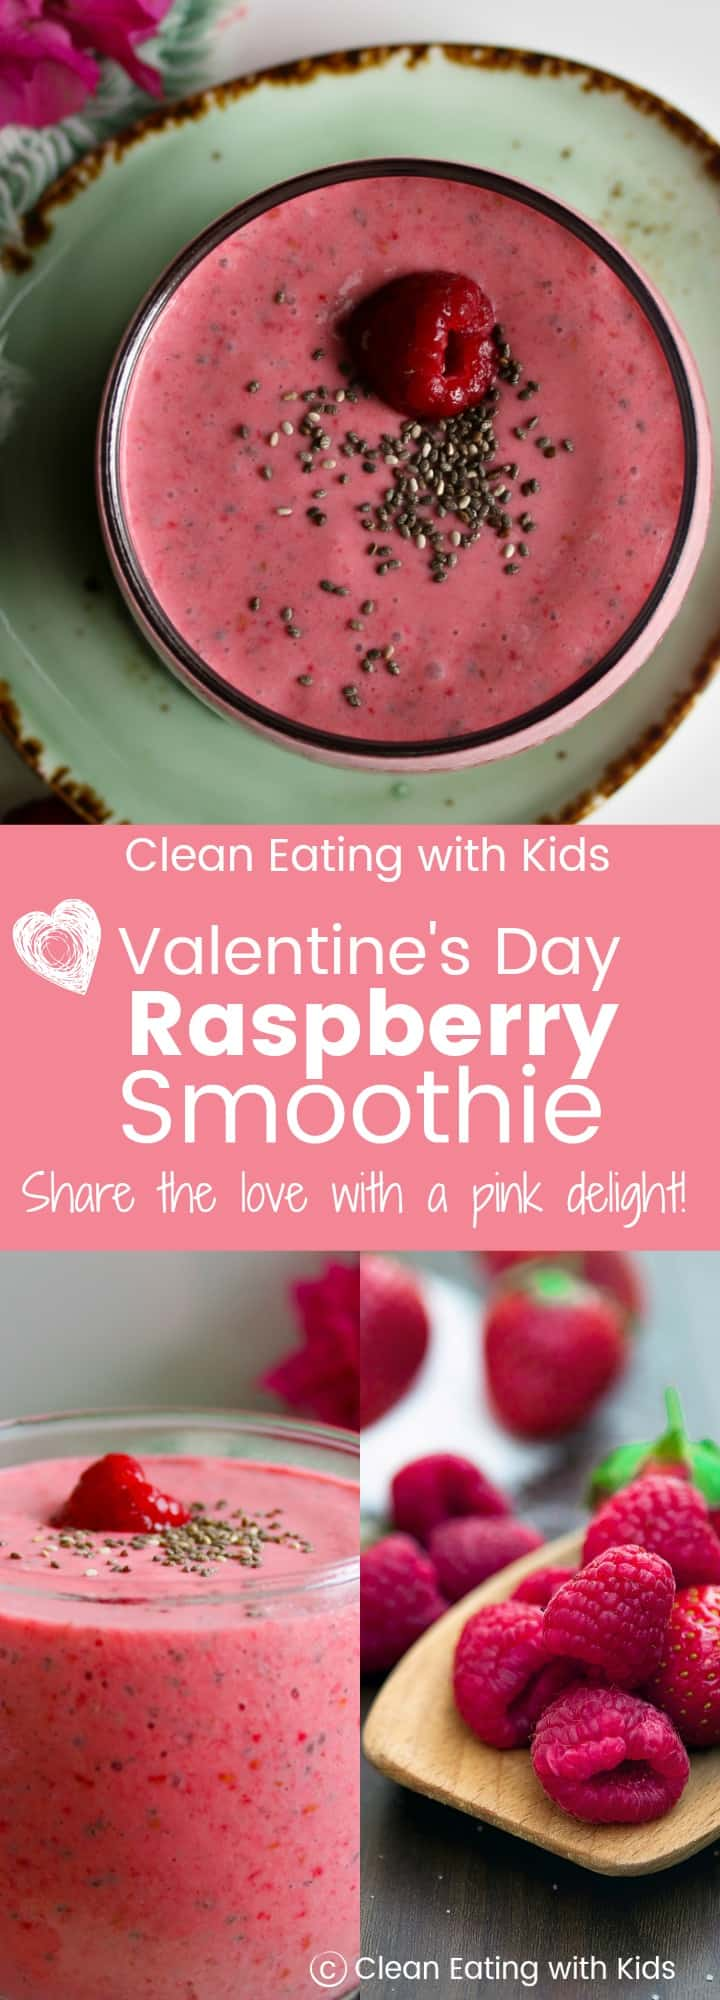 The perfect Valentines Day Smoothie that will make the whole family feel loved. #vegan #healthy #refinedsugarfree #cleaneating #realfood